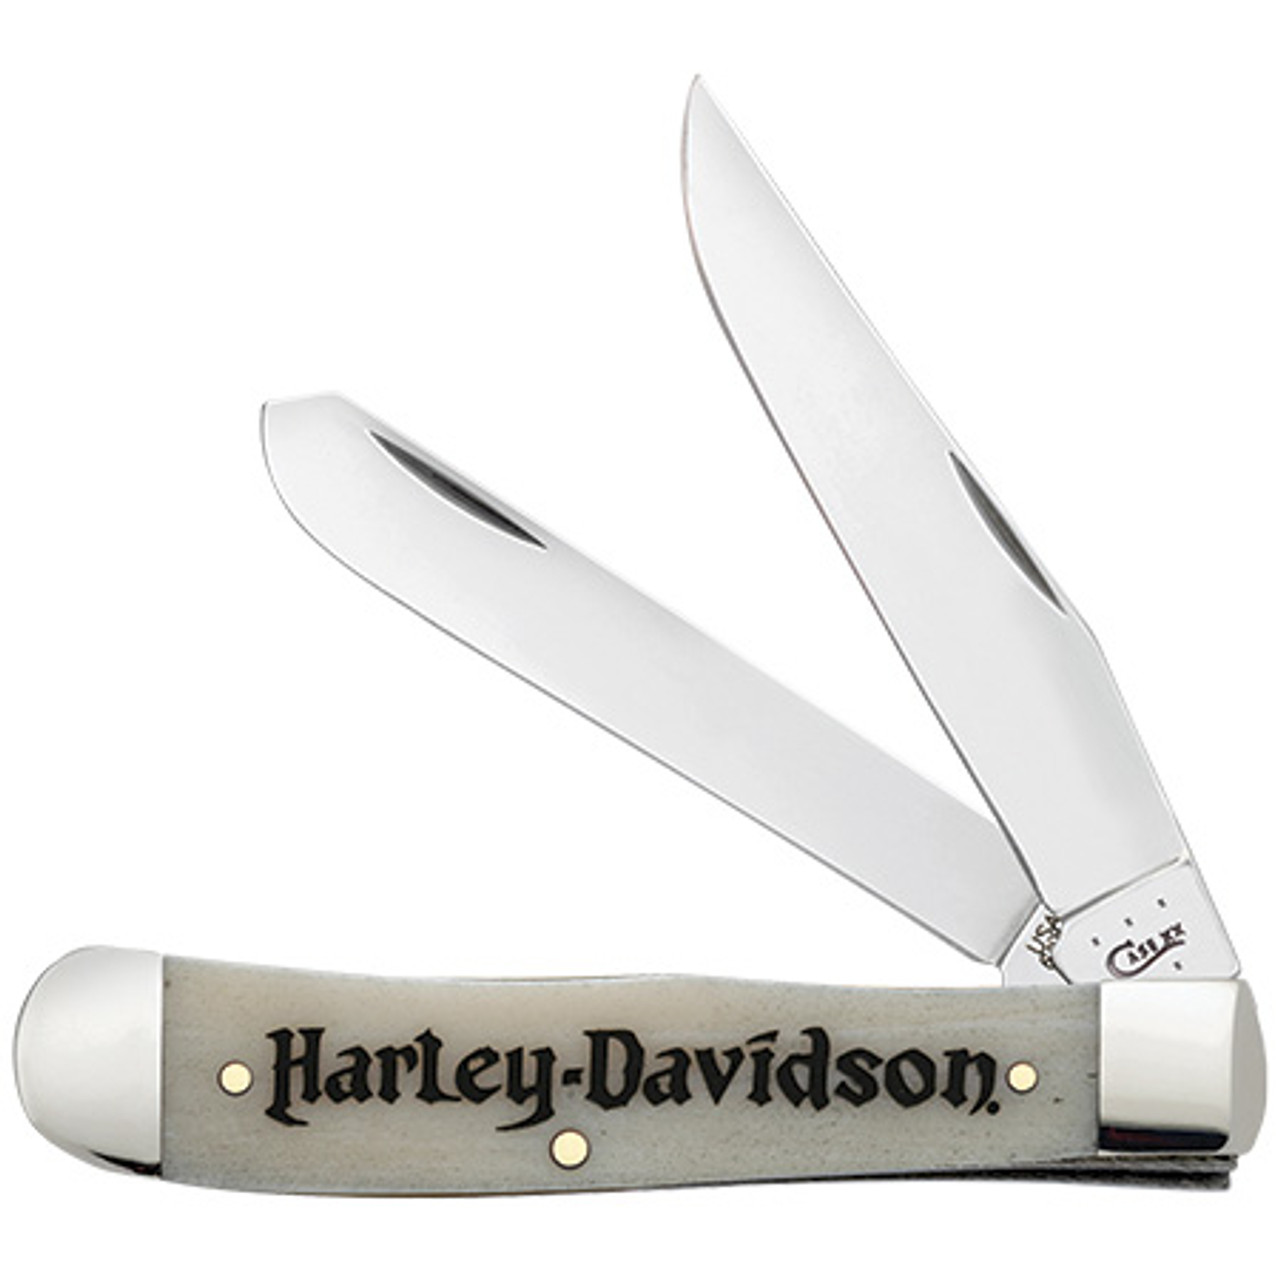 Case Harley Davidson Smooth Natural Bone Handle, 52140 Trapper